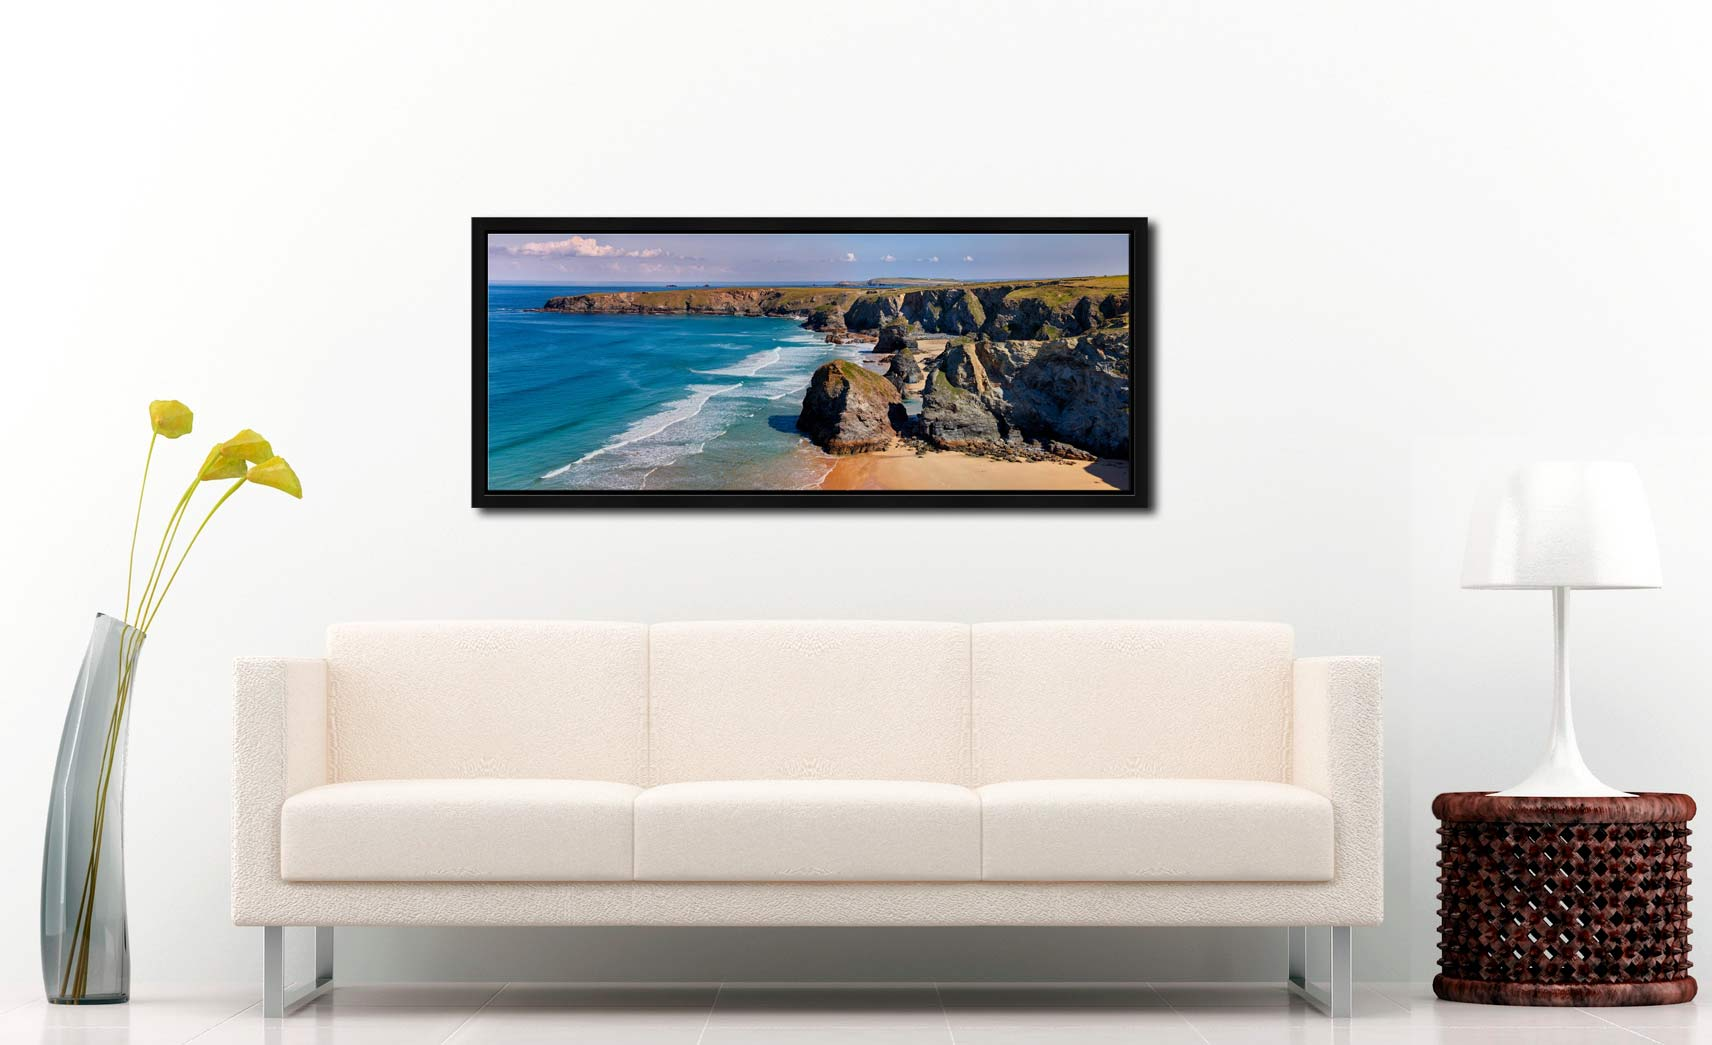 Very large high resolution image of Bedruthan rock stacks and golden beach - Black oak floater frame with acrylic glazing on Wall